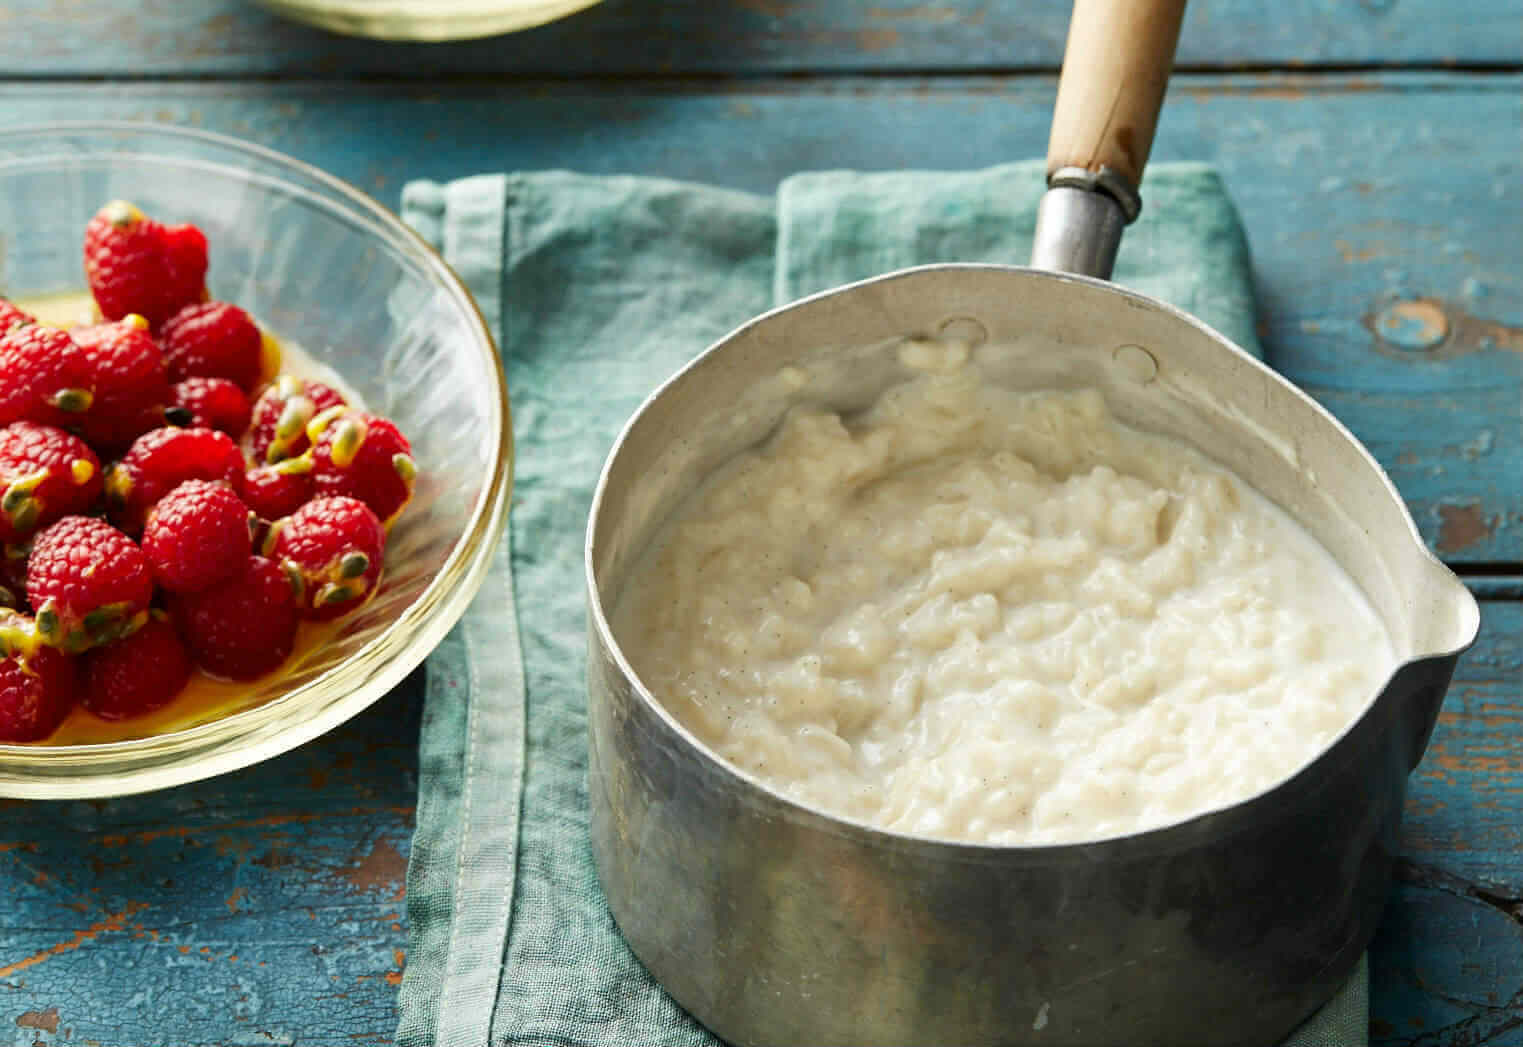 Coconut milk rice pudding with raspberries